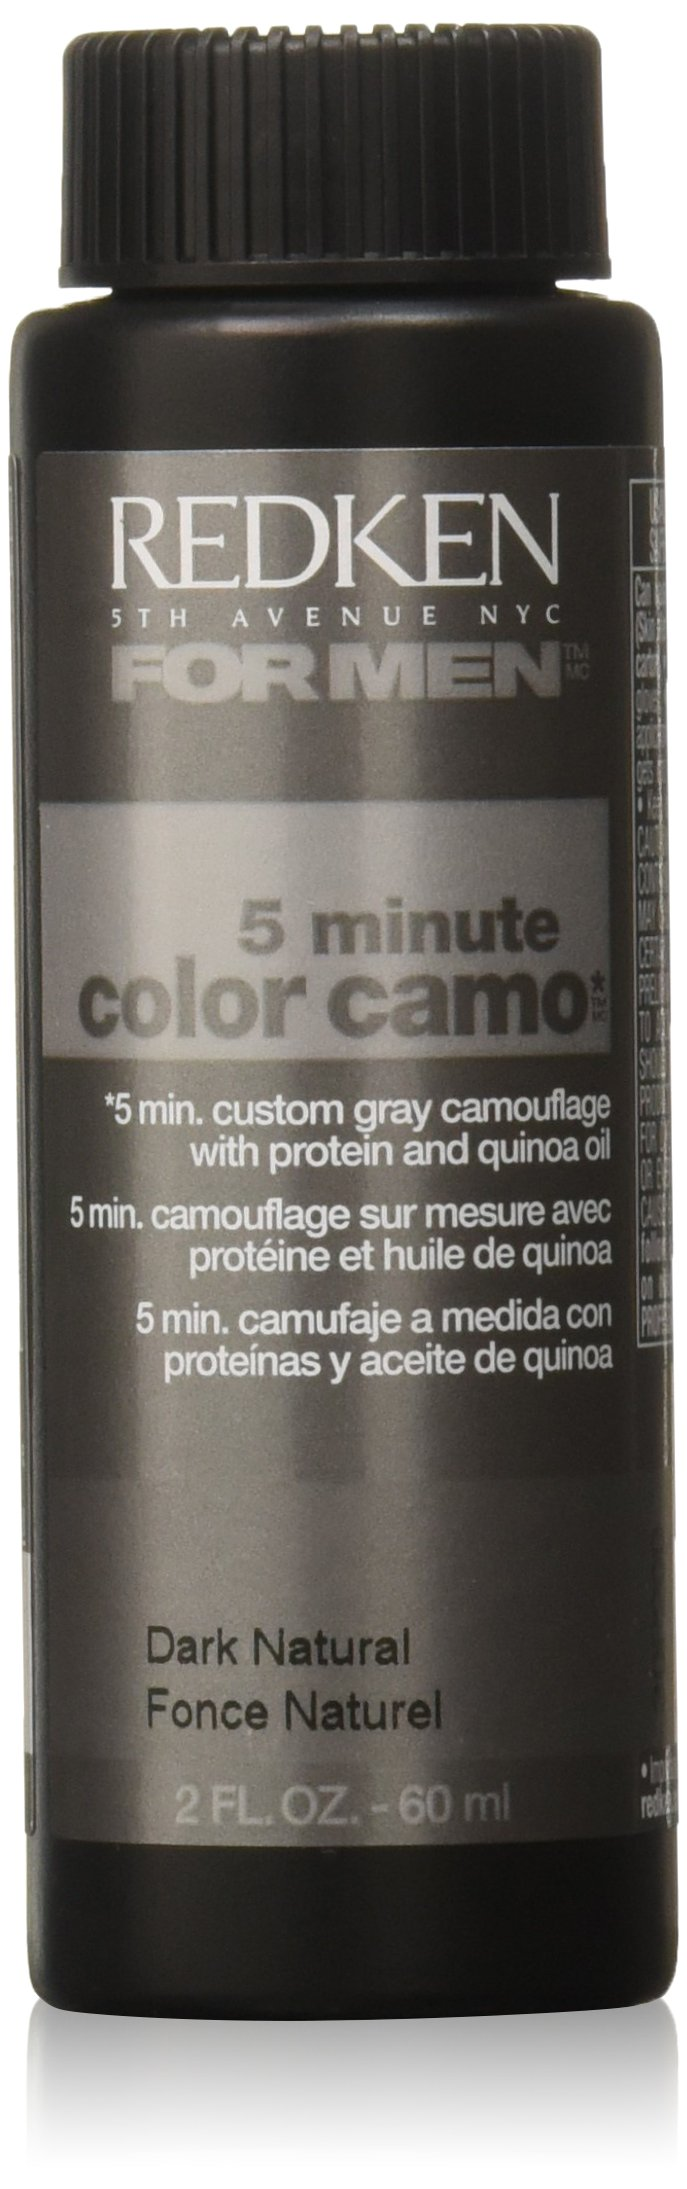 Redken  Minute Camo Hair Color Dark Natural  Ounce